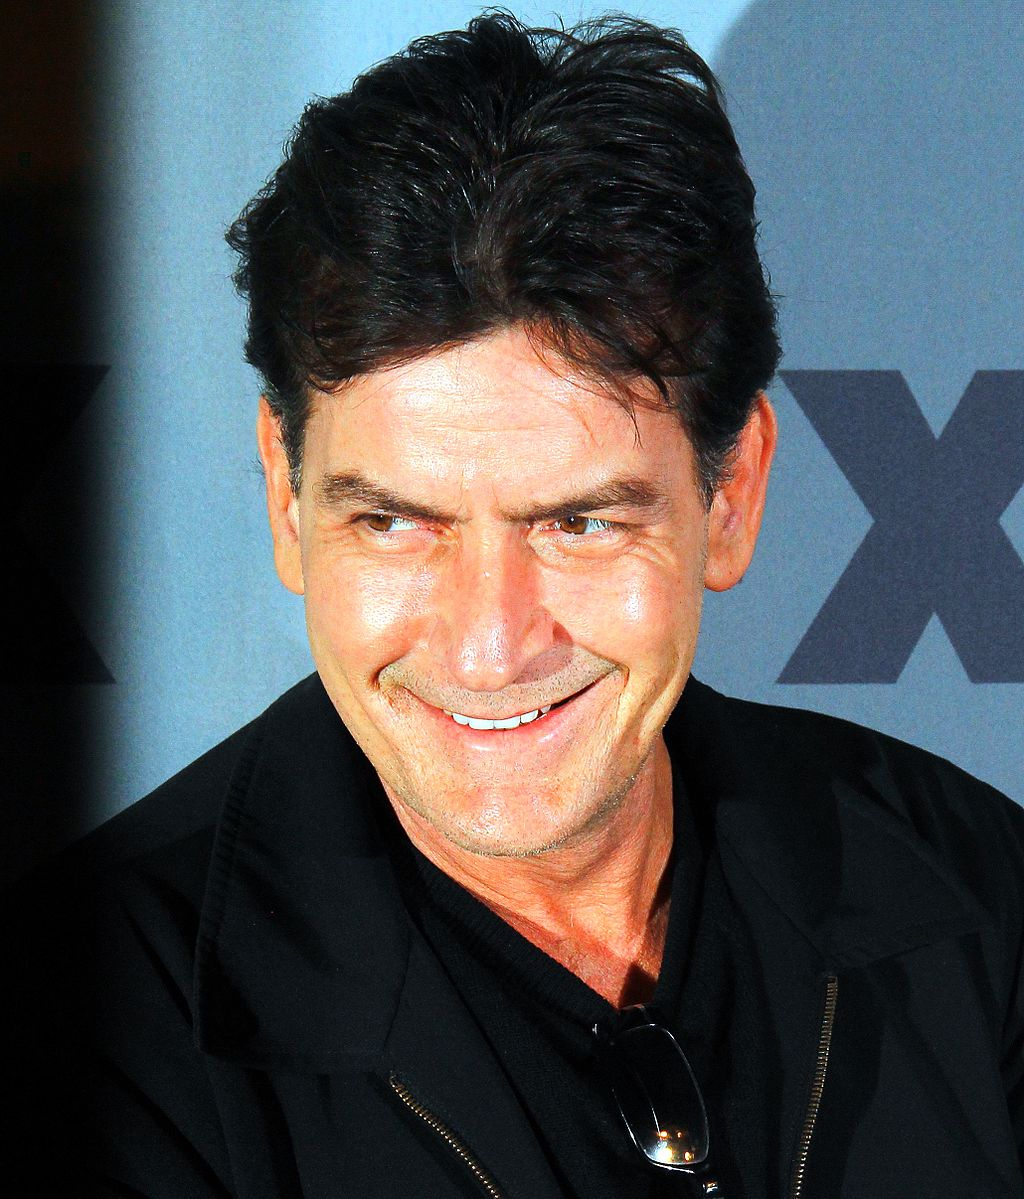 Charlie Sheen, Fotocredit: Joella Marano (CC BY-SA 2.0)